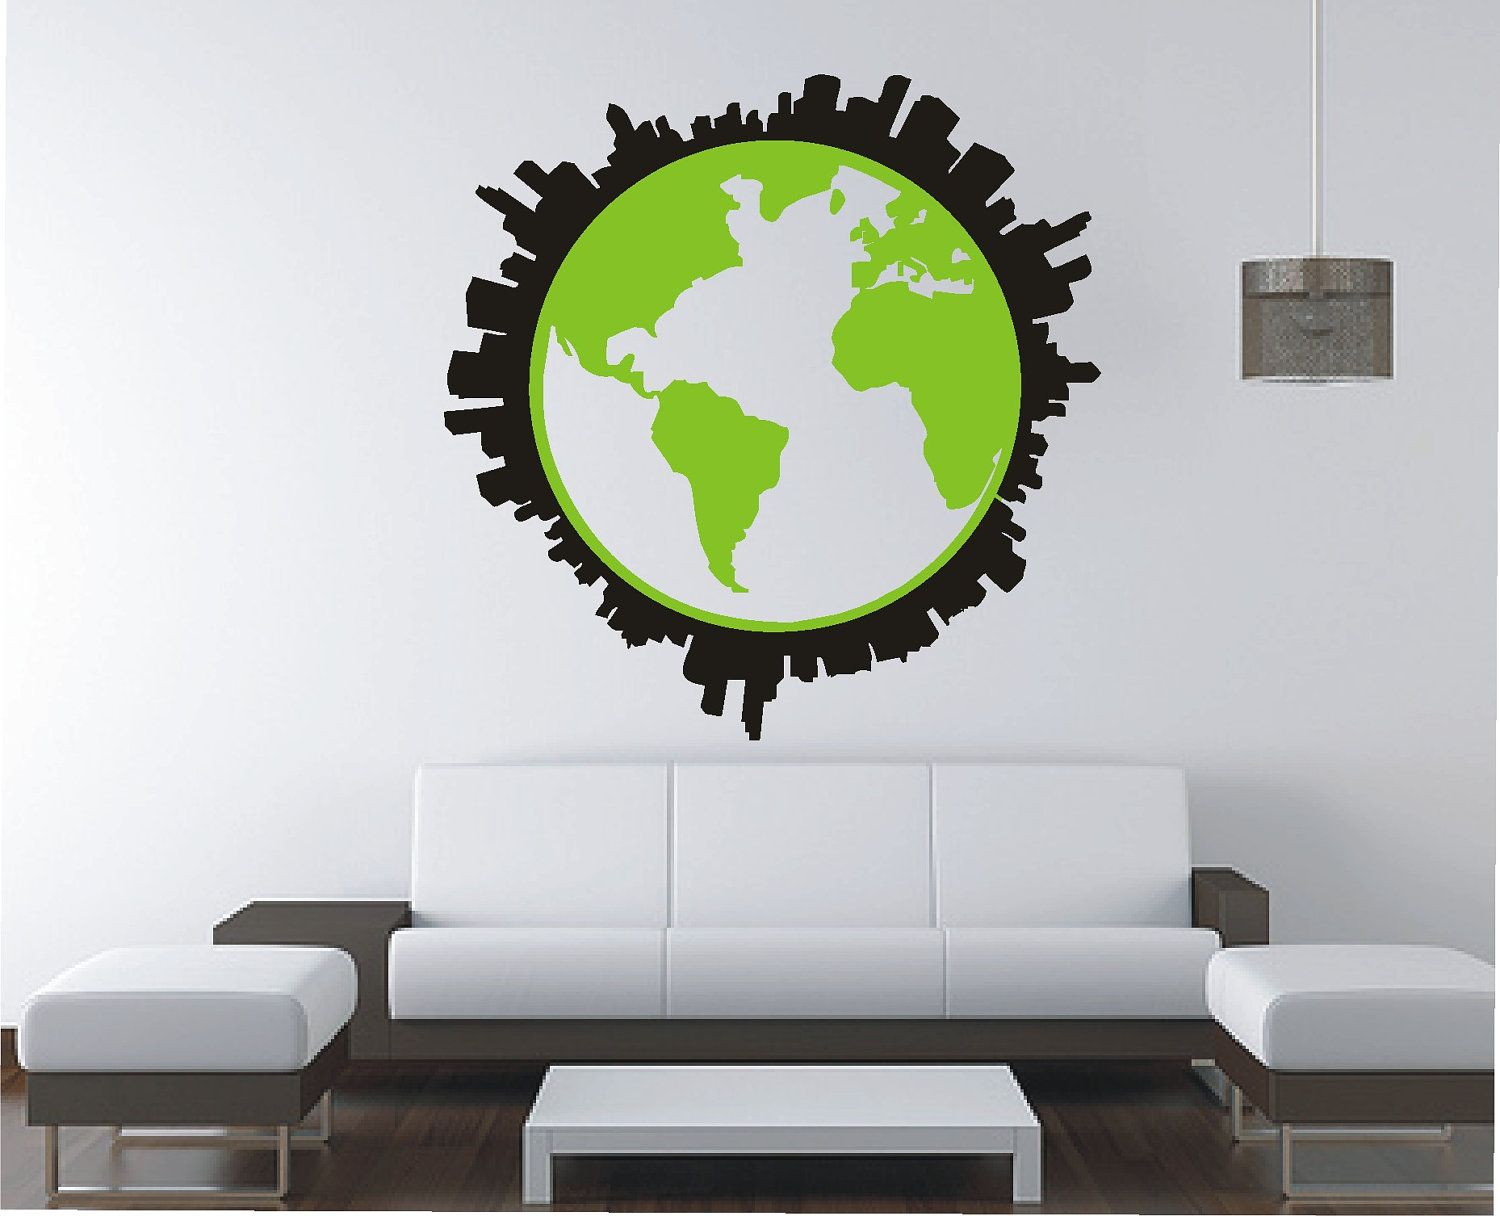 Globe world map city skyline wall sticker vinyl decal wall globe world map city skyline wall sticker vinyl decal wall tattoo mural gumiabroncs Choice Image